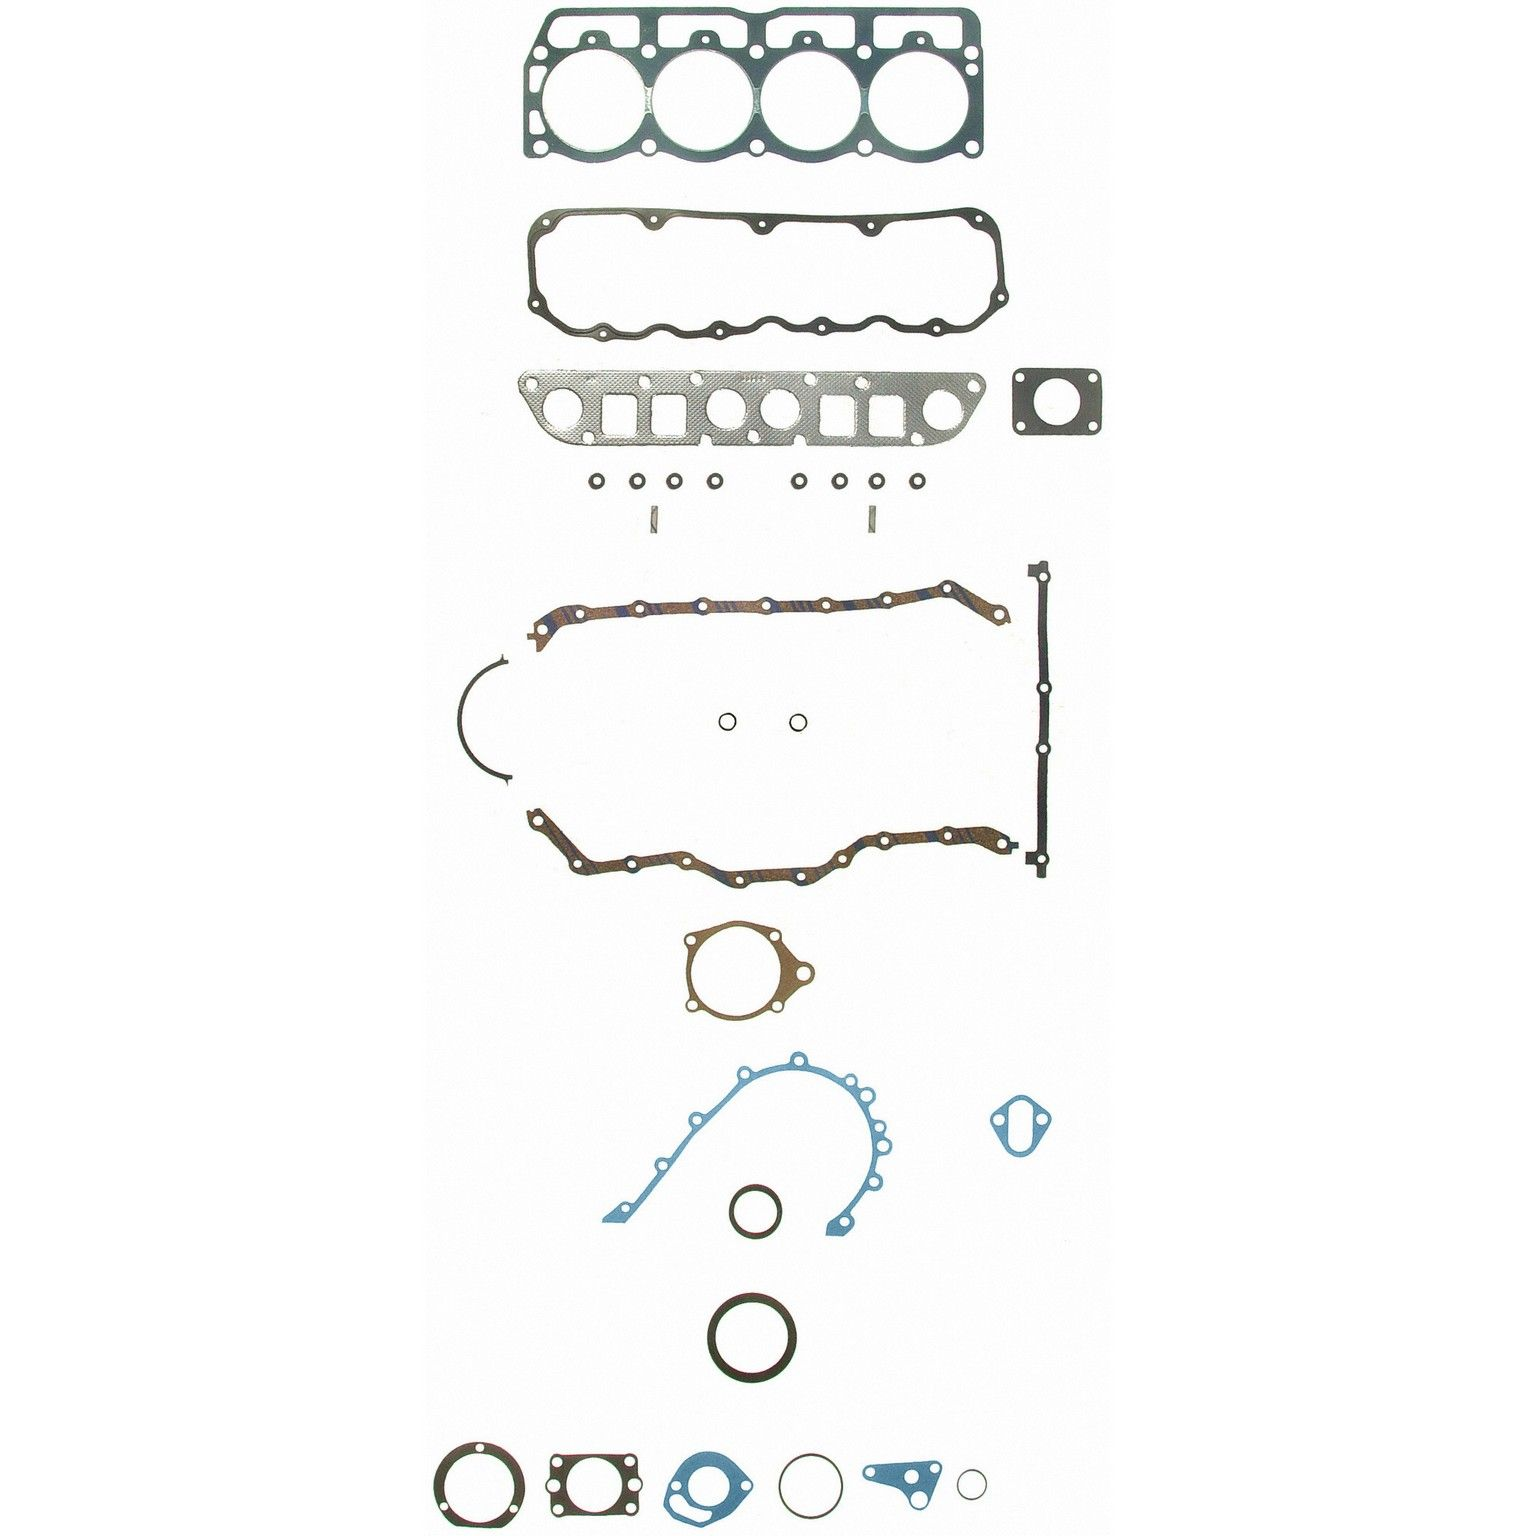 Jeep Cj7 Engine Gasket Set Replacement Felpro Sealed Power Victor Diagram 1986 4 Cyl 25l 260 1192 Permadry Molded Rubber Valve Cover Gskt Incl Premium Stem Seals